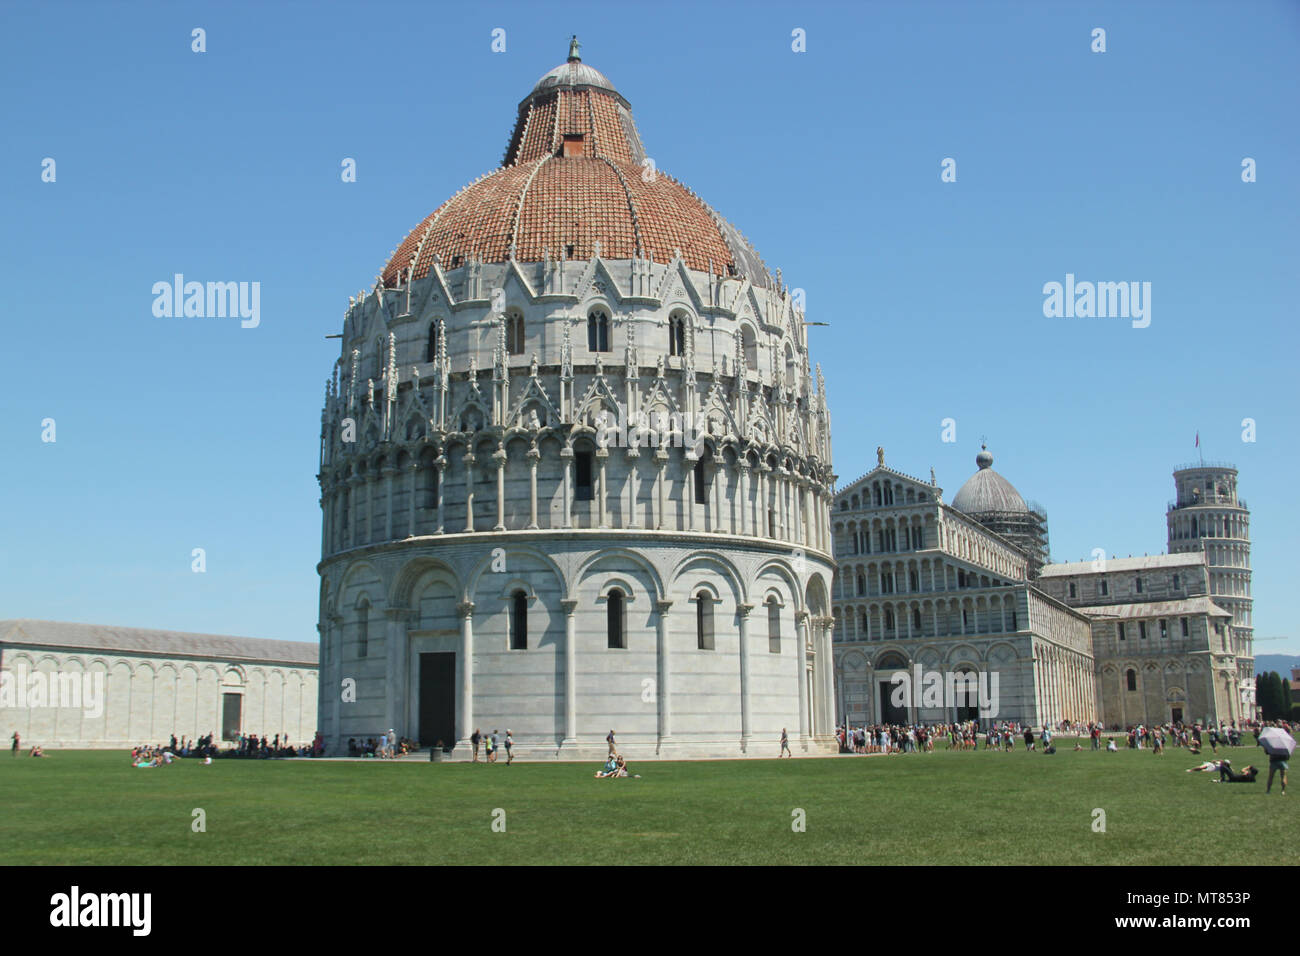 Pisa Baptistery in Square of Miracles in Pisa, Italy - Stock Image